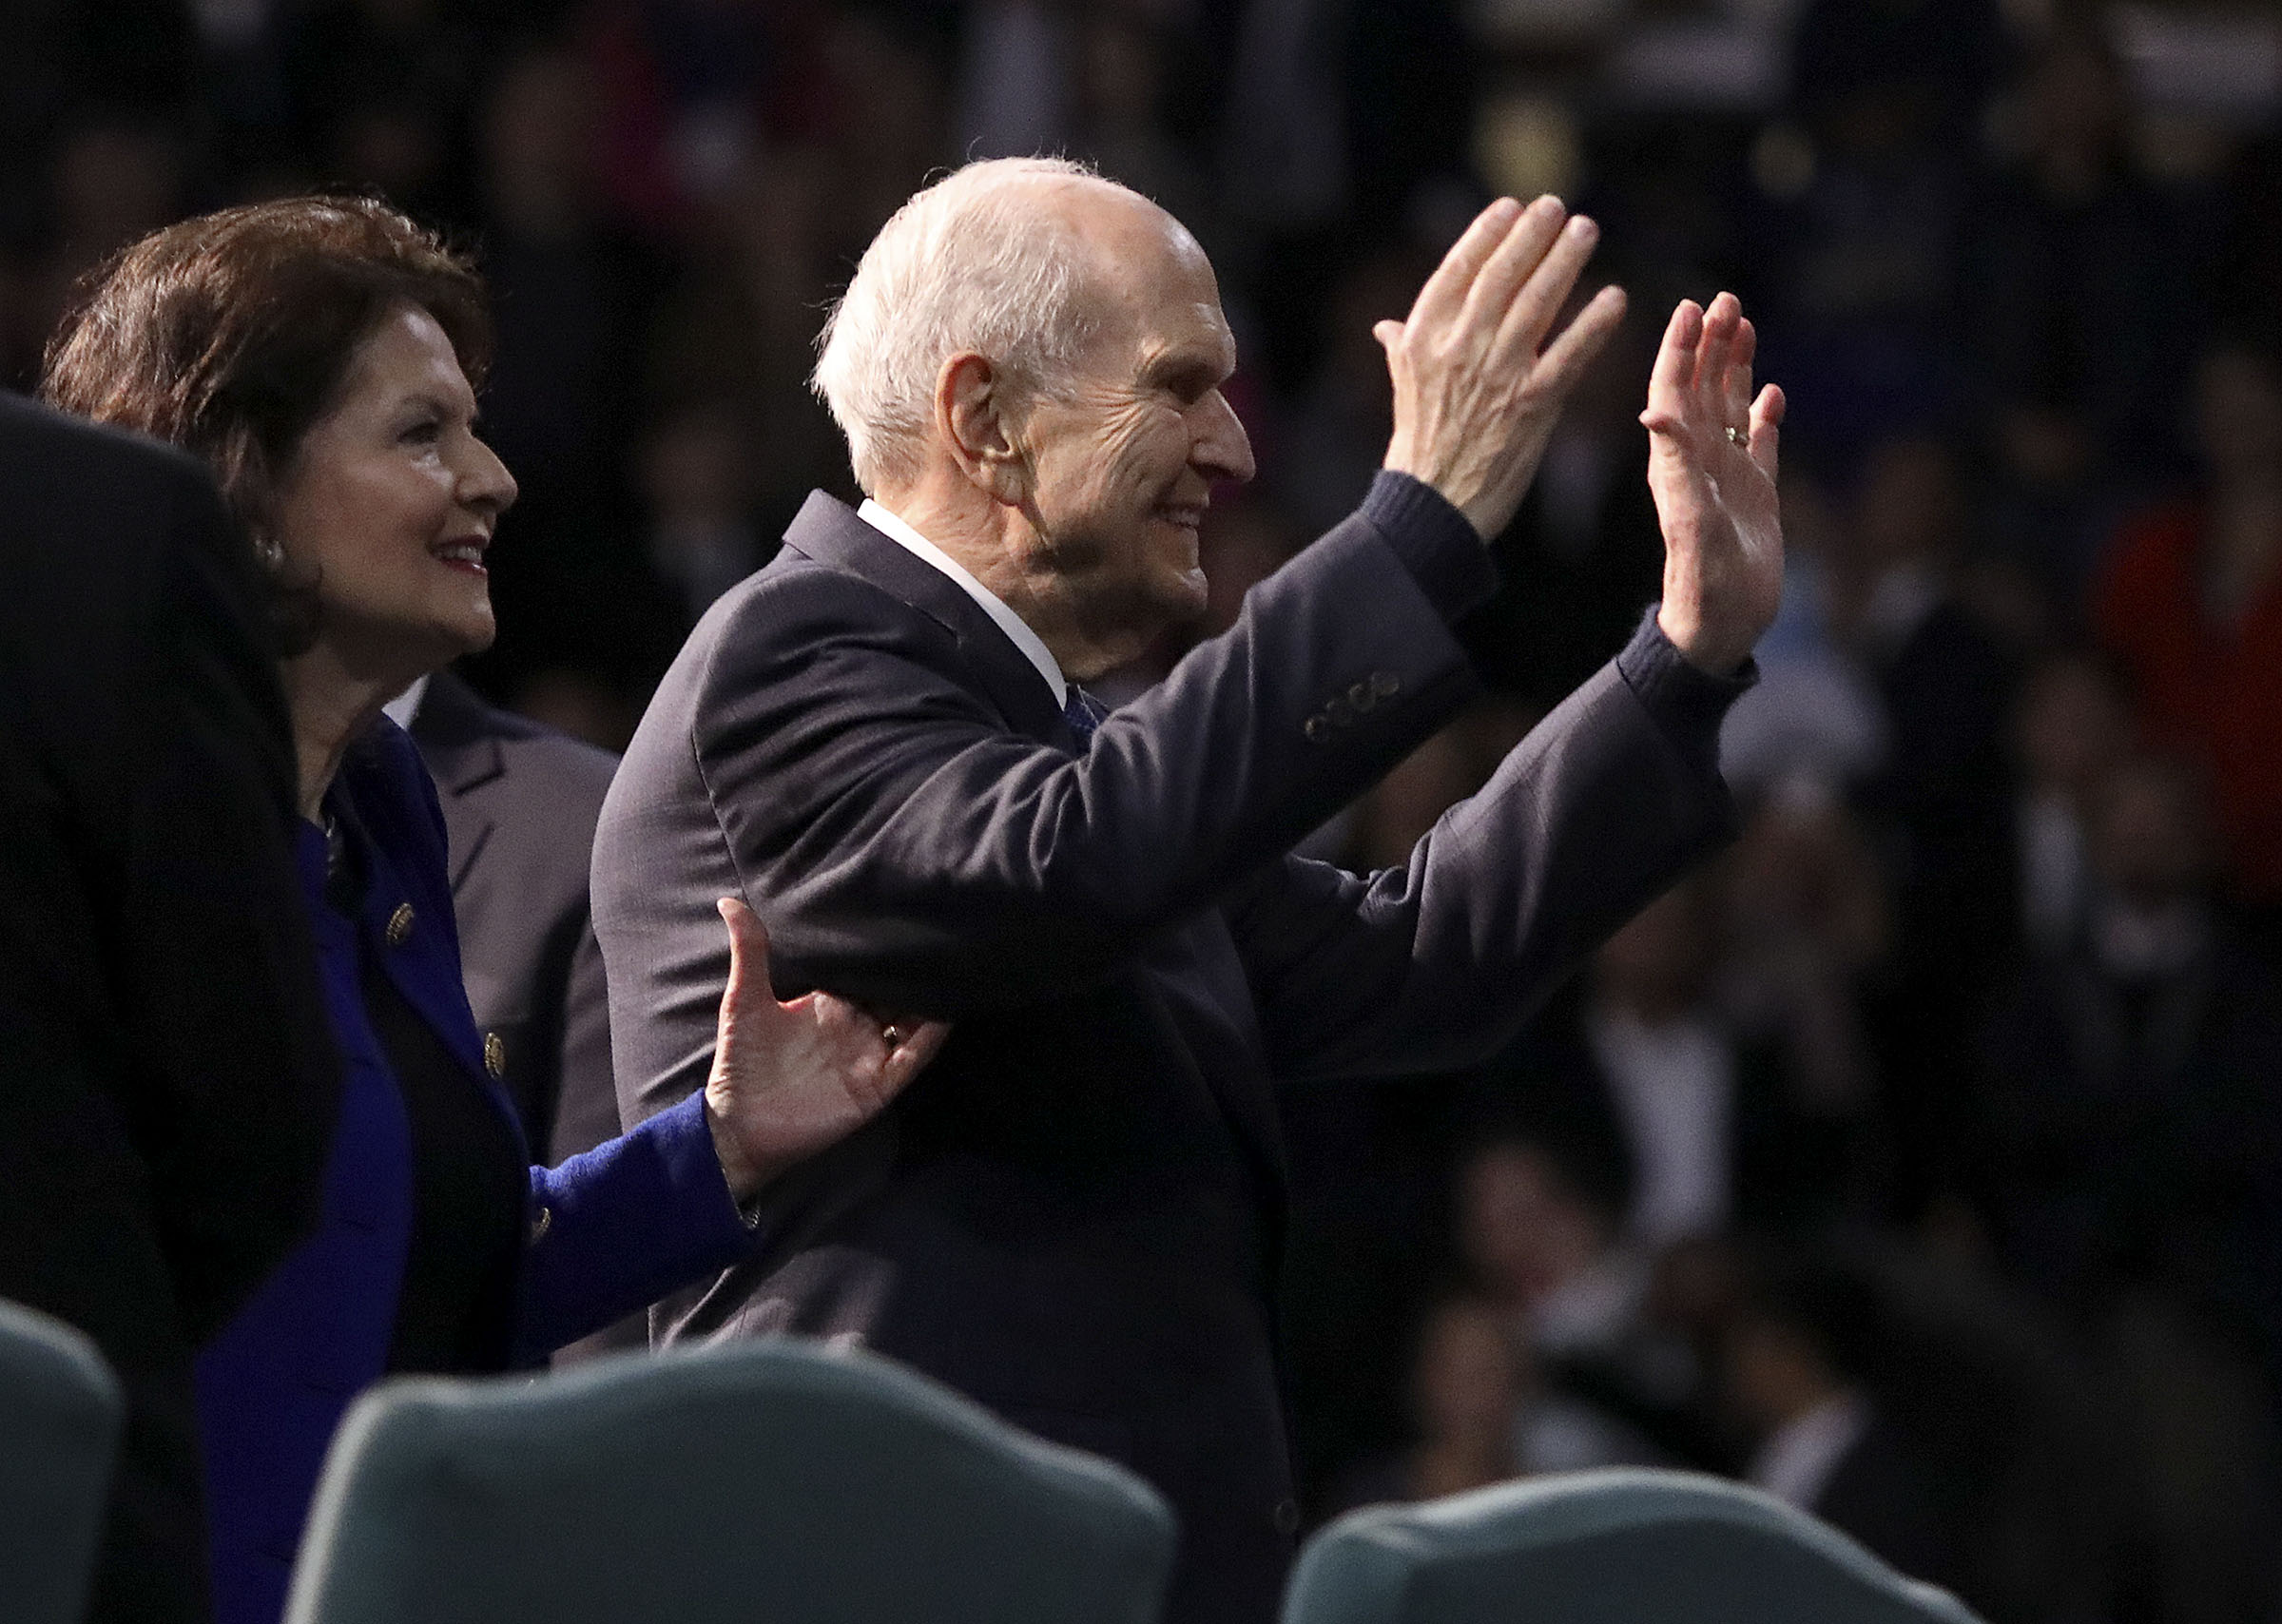 President Russell M. Nelson of The Church of Jesus Christ of Latter-day Saints waves to the choir after speaking at the Langley Events Center in Langley, British Columbia, on Sunday, Sept. 16, 2018.